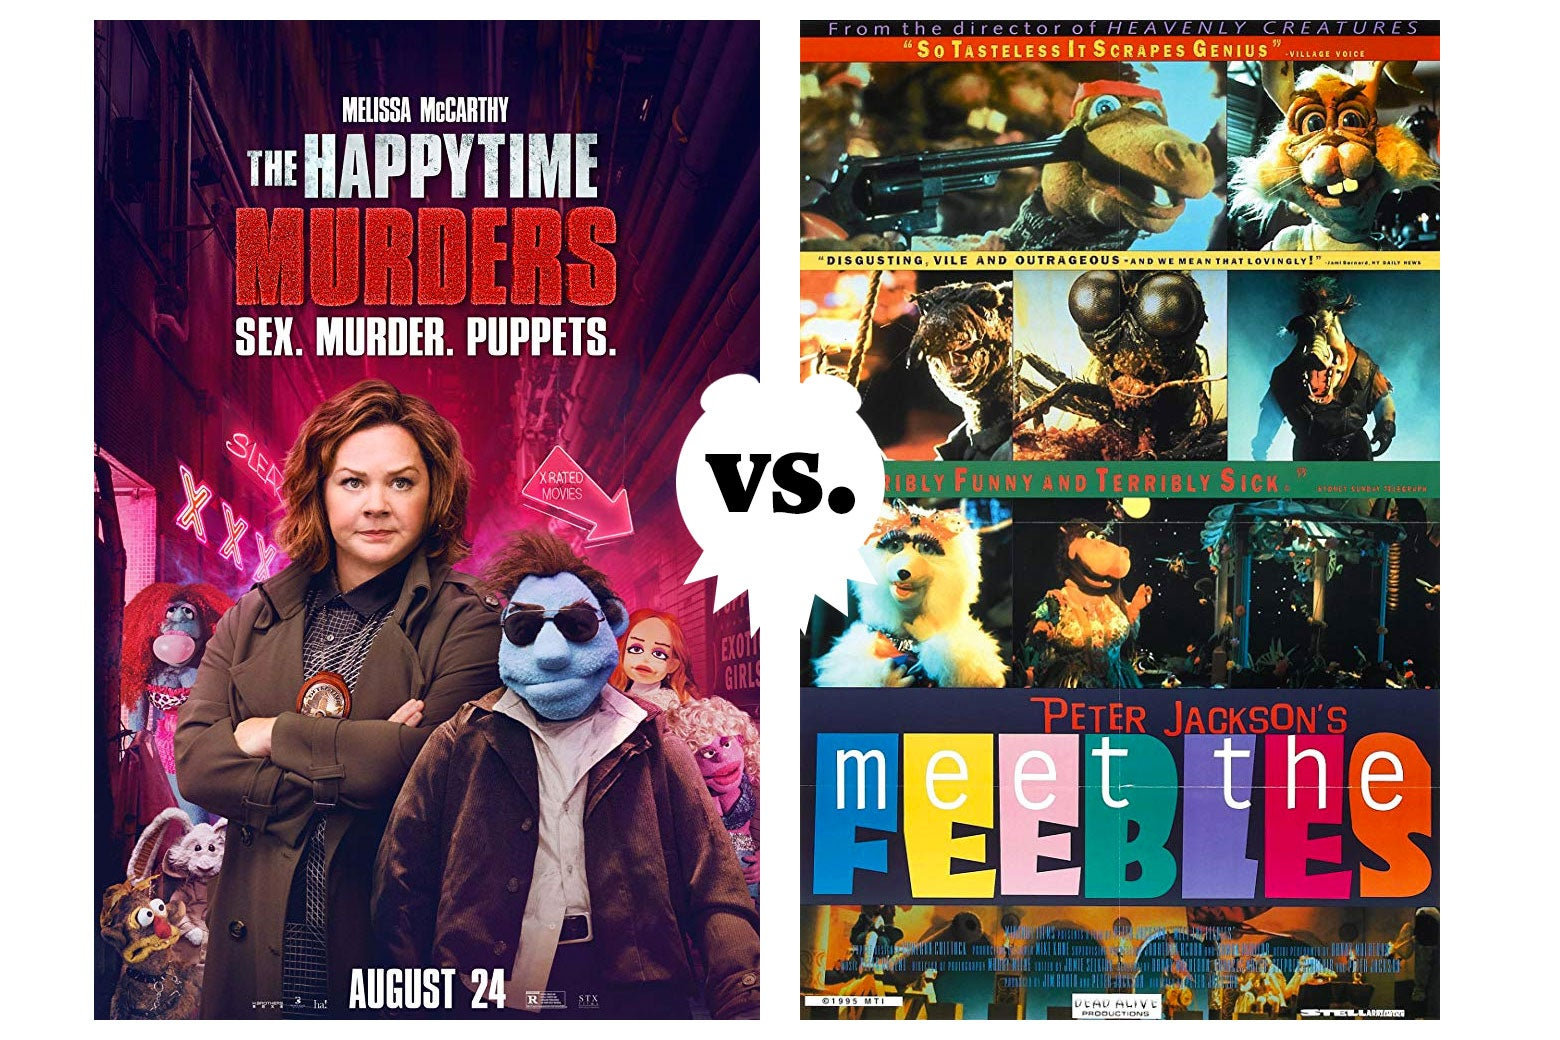 A poster for The Happytime Murders and a poster for Meet the Feebles.